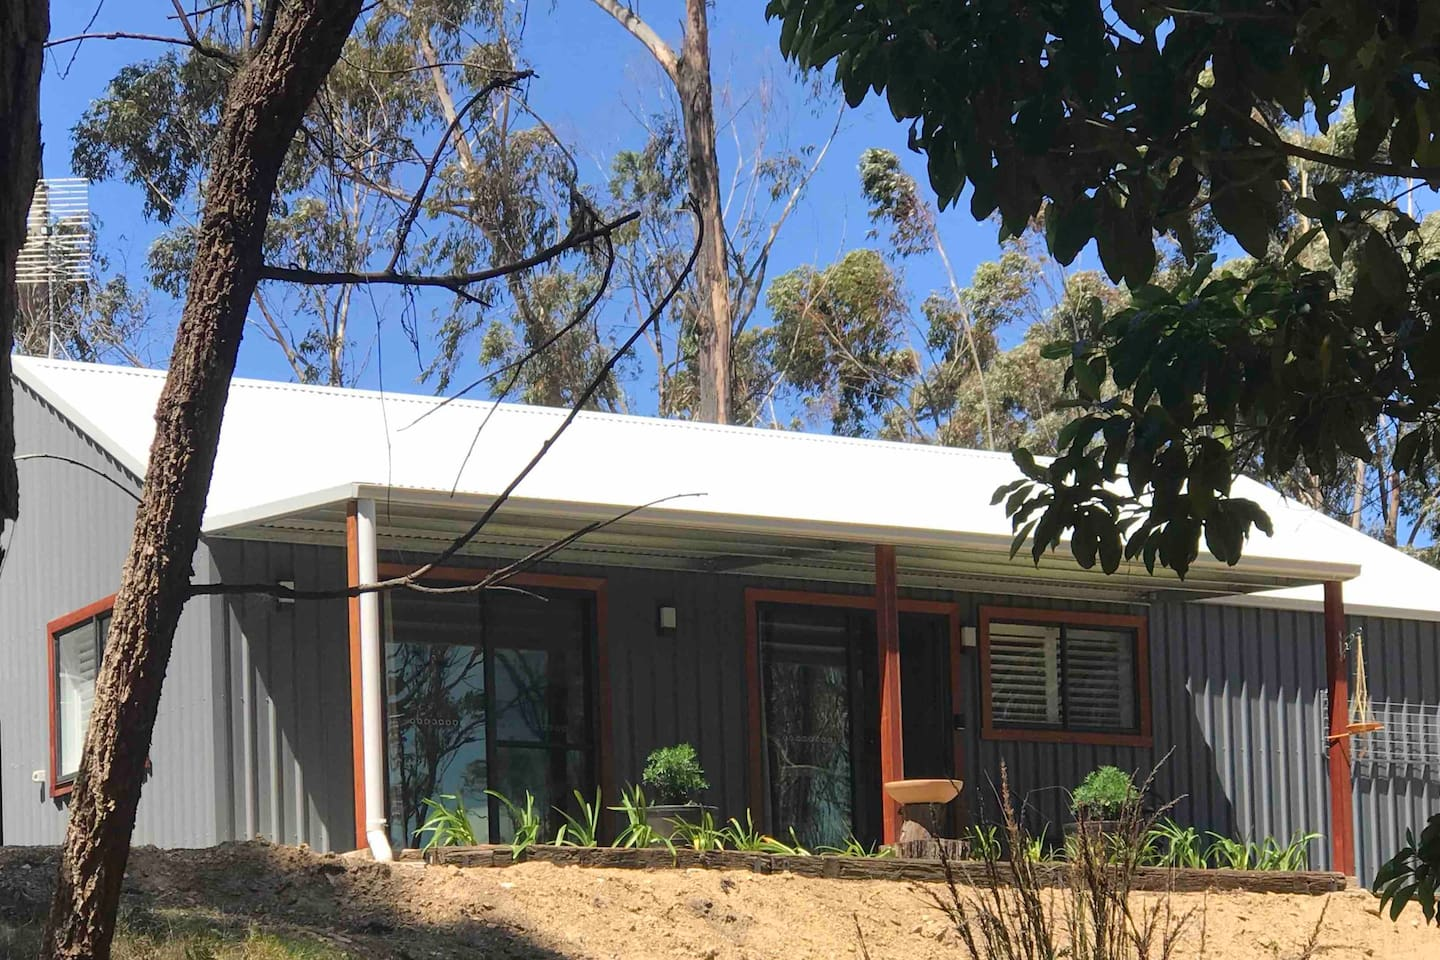 Bellbird Haven, brand new, private guesthouse on a 2 1/2 acre property, just minutes from Tathra.